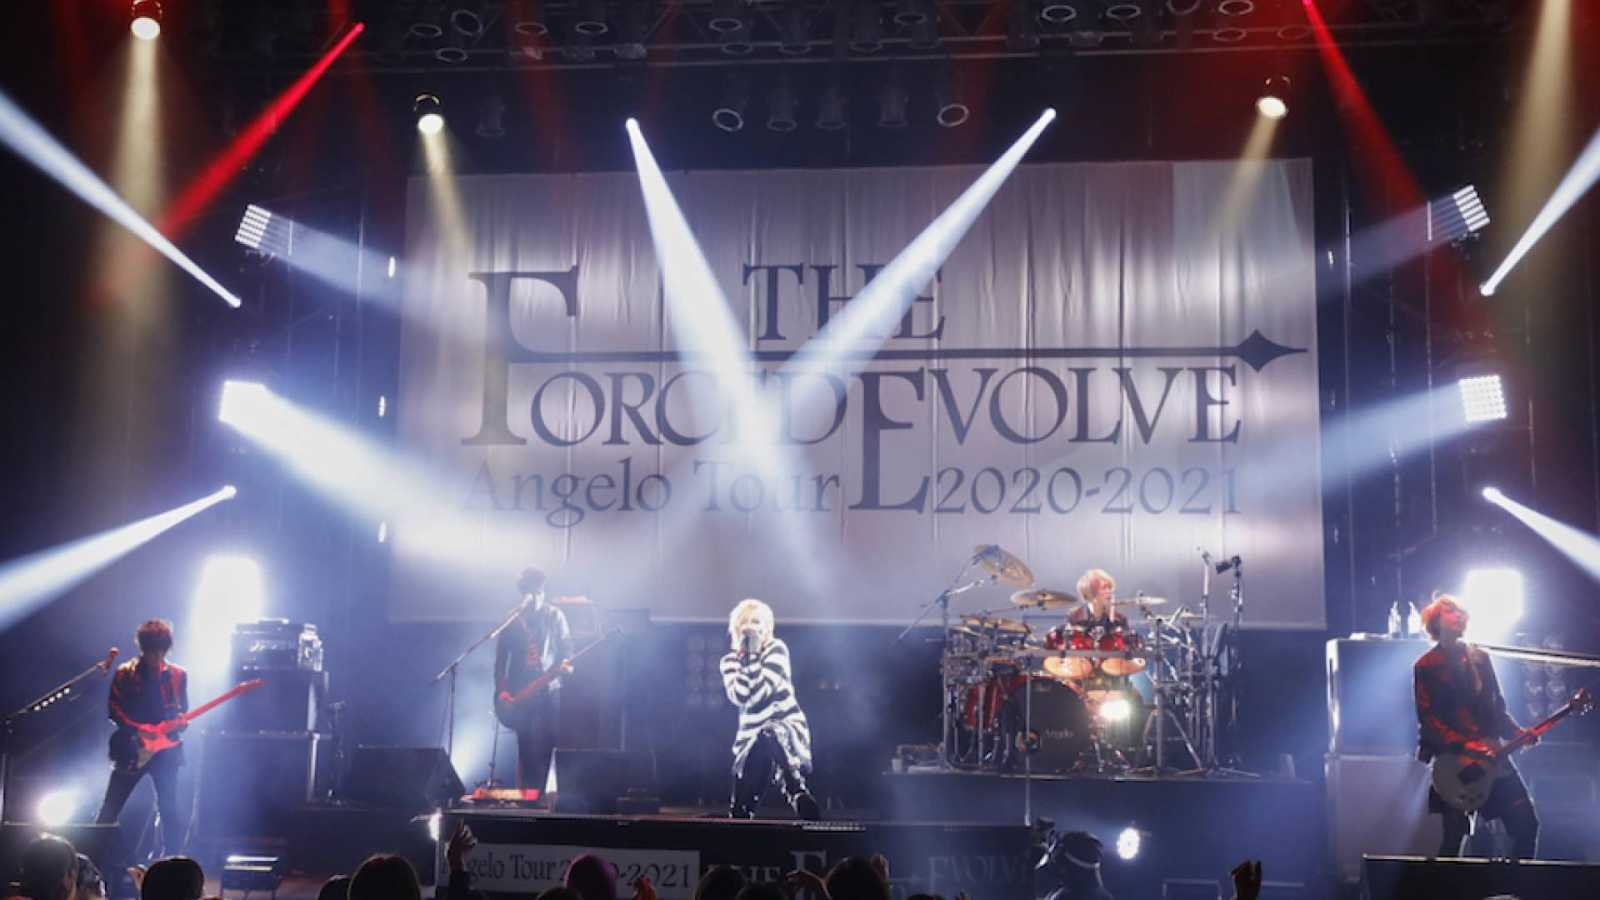 Angelo Tour 2020-2021「THE FORCED EVOLVE」